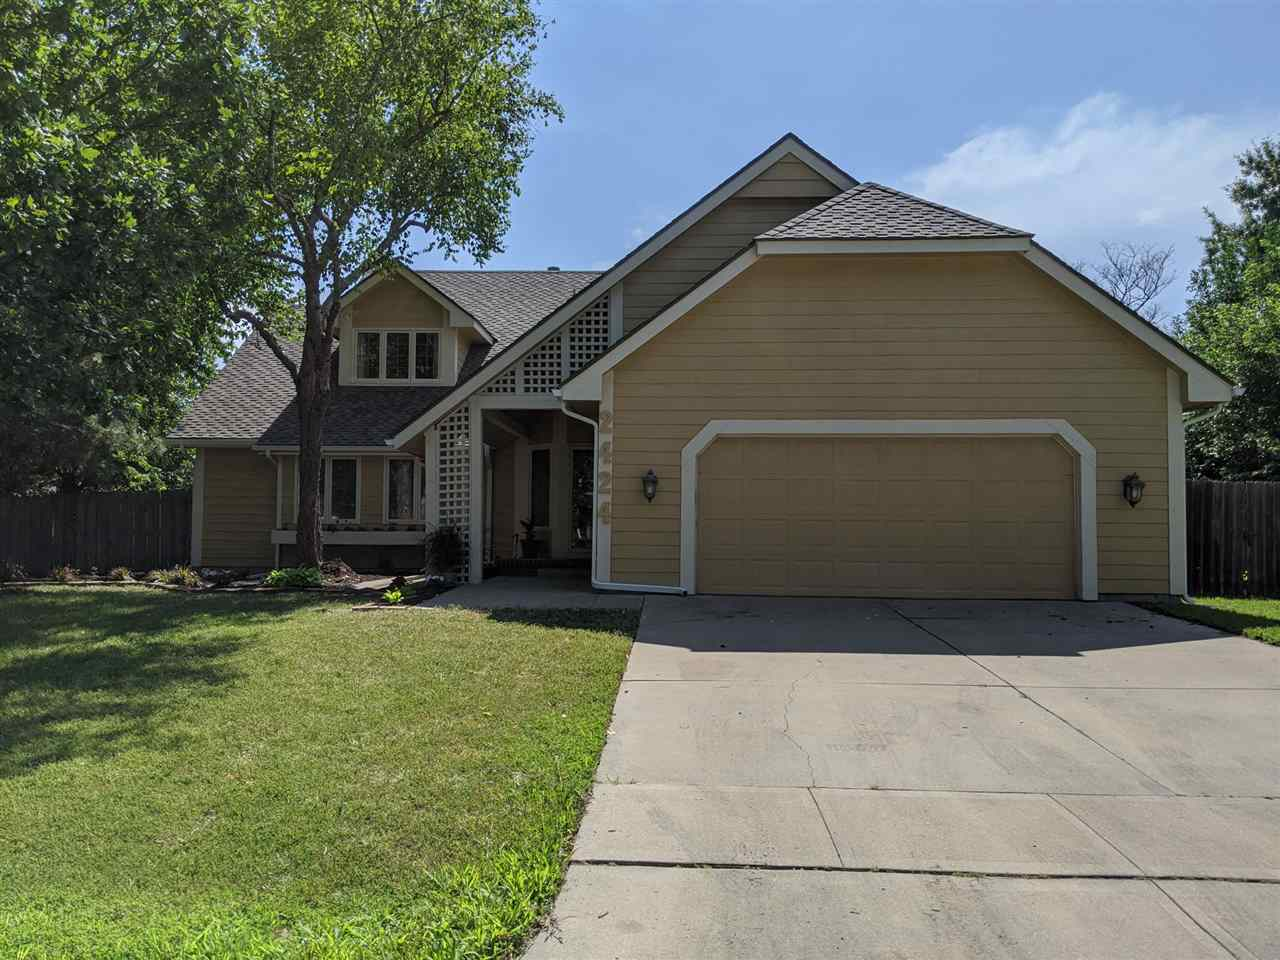 Tucked away in the Sycamore Village neighborhood in northeast Wichita, this five bedroom estate is y